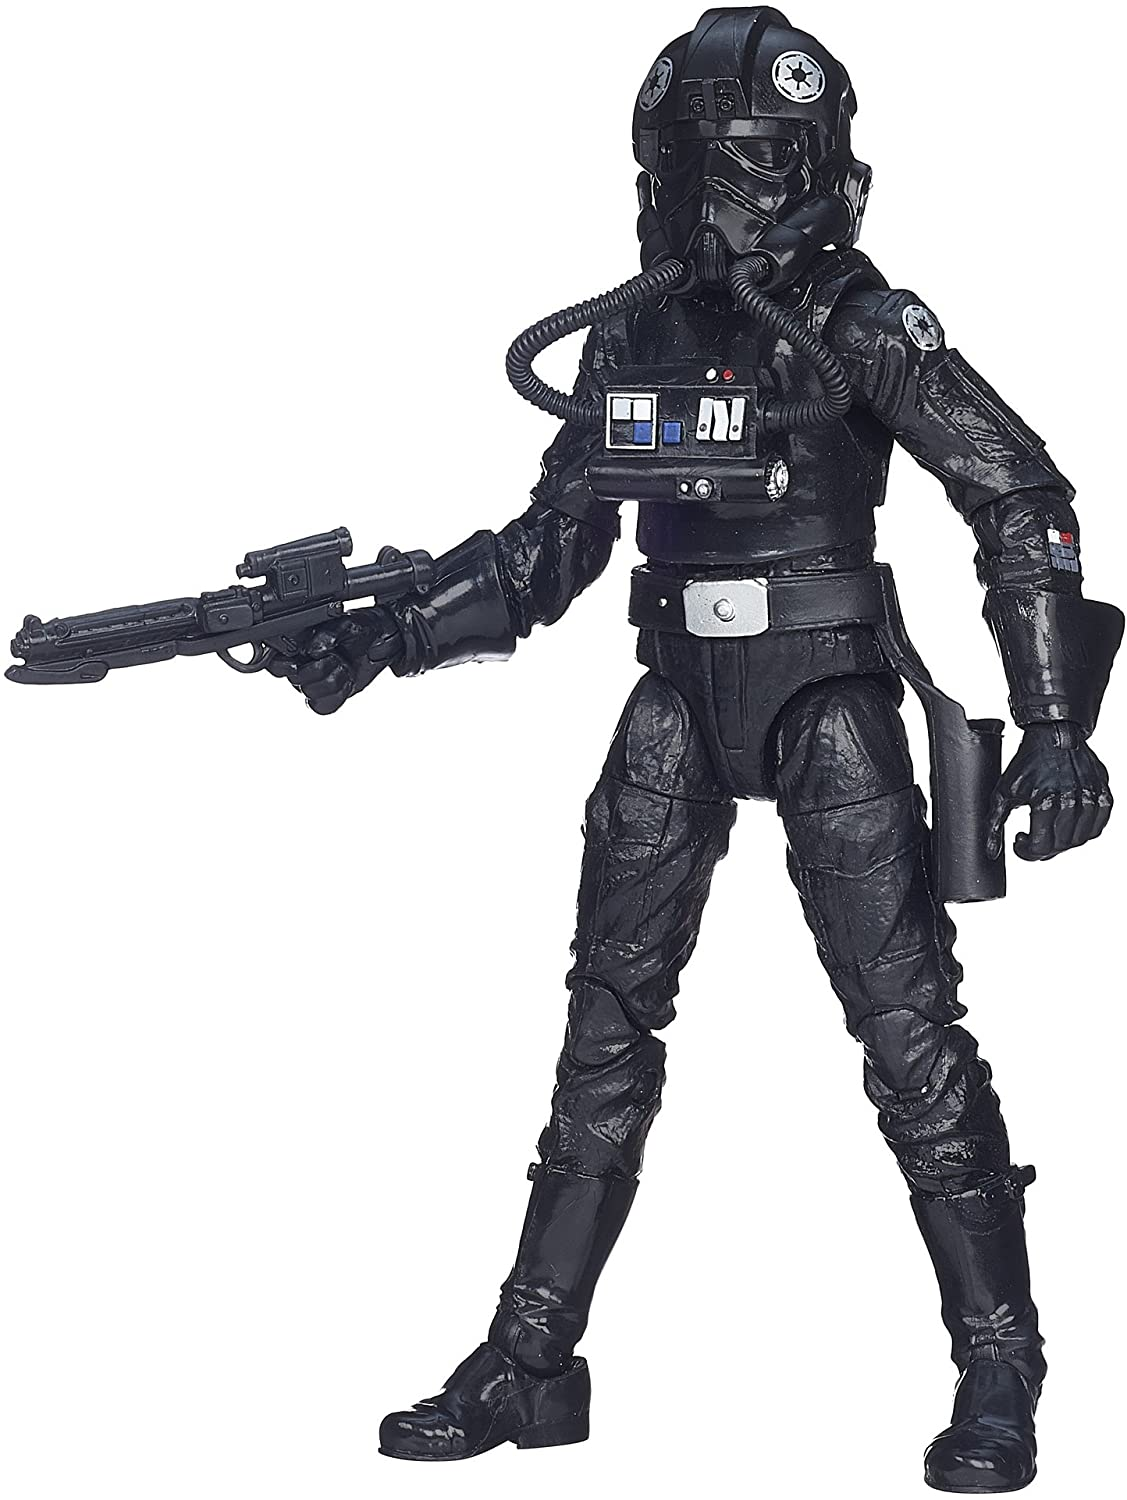 Action Figure Imperial Tie Fighter Pilot: Star Wars (The Black Series) (40 Anos O Império Contra-Ataca) (40th The Empire Strikes Back) E8083 - Hasbro